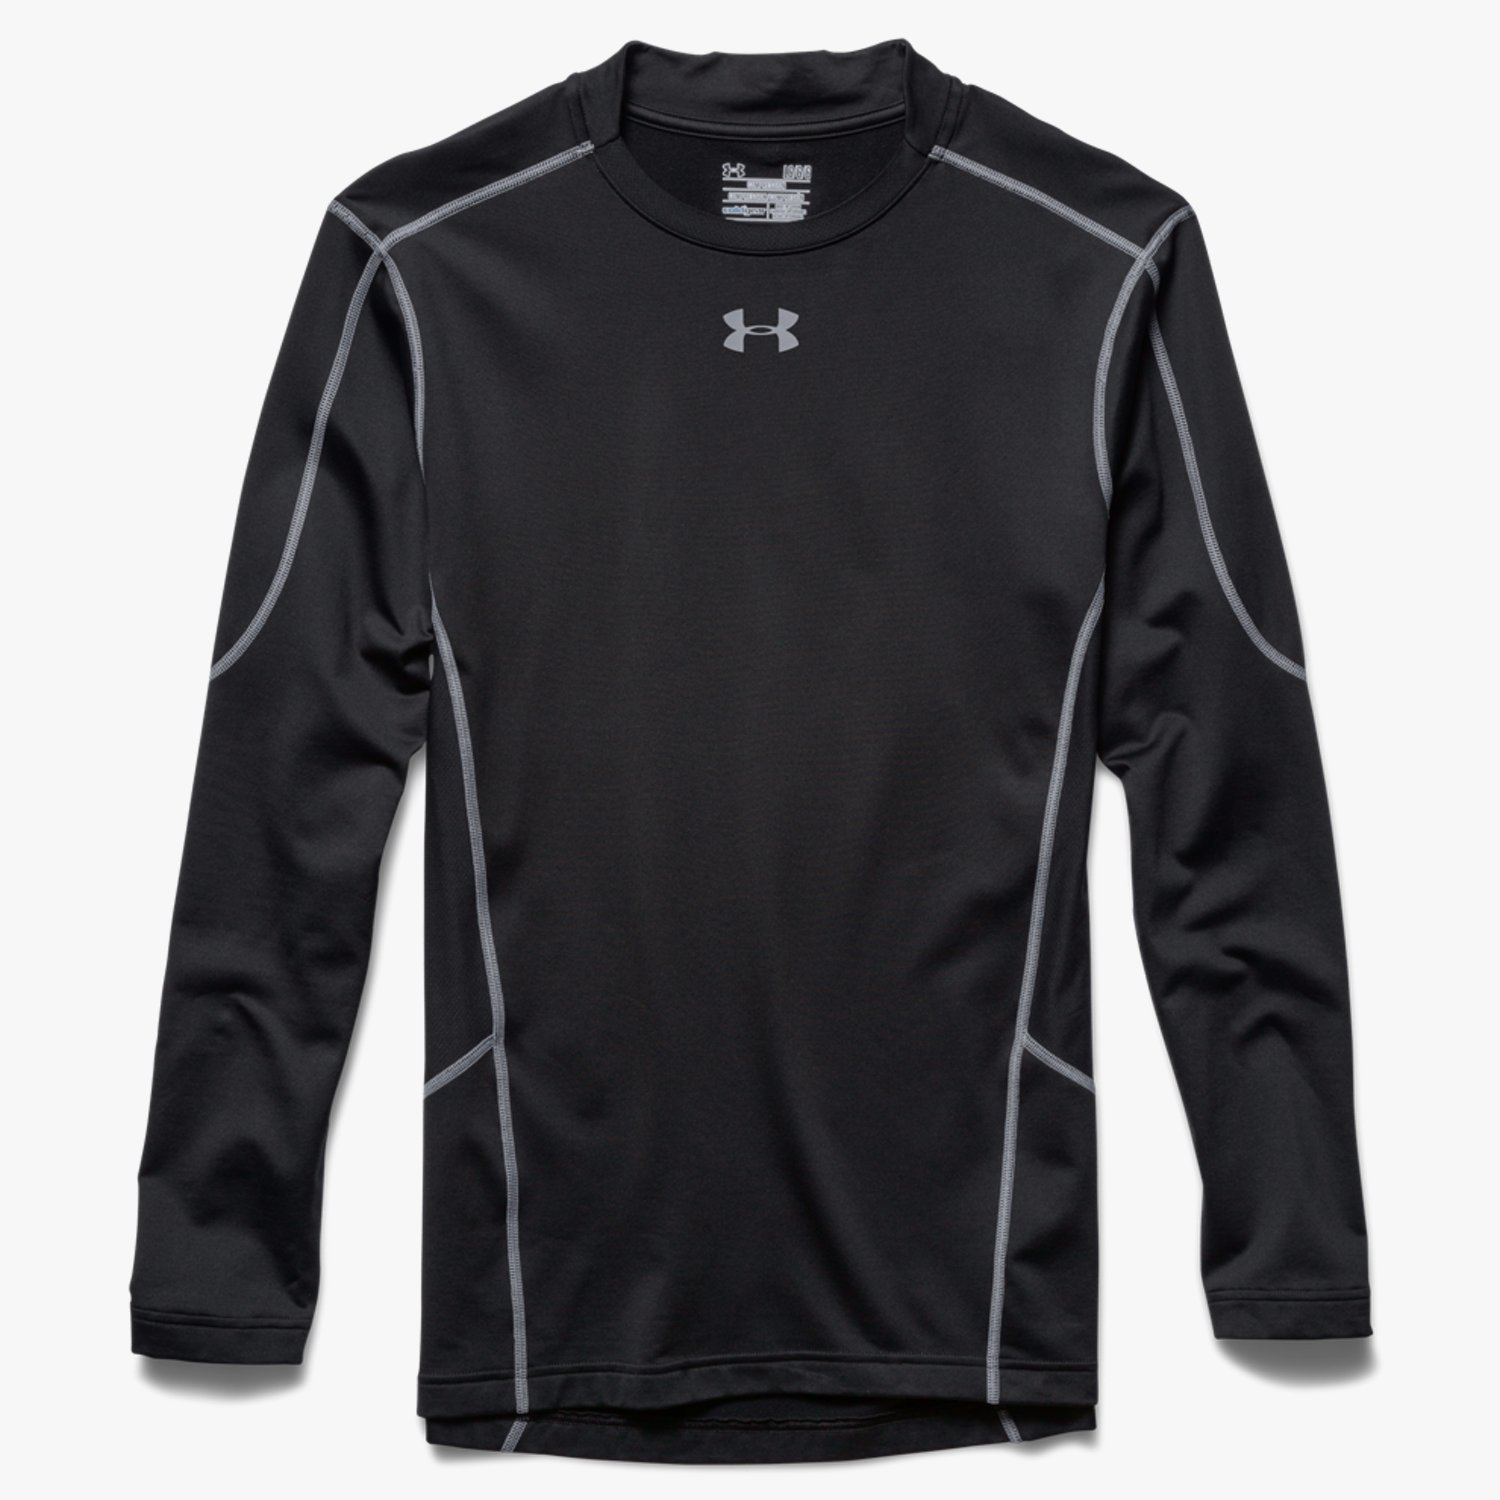 Under Armour UA ColdGear Evo Compression Hybrid Mock Black/Steel-30